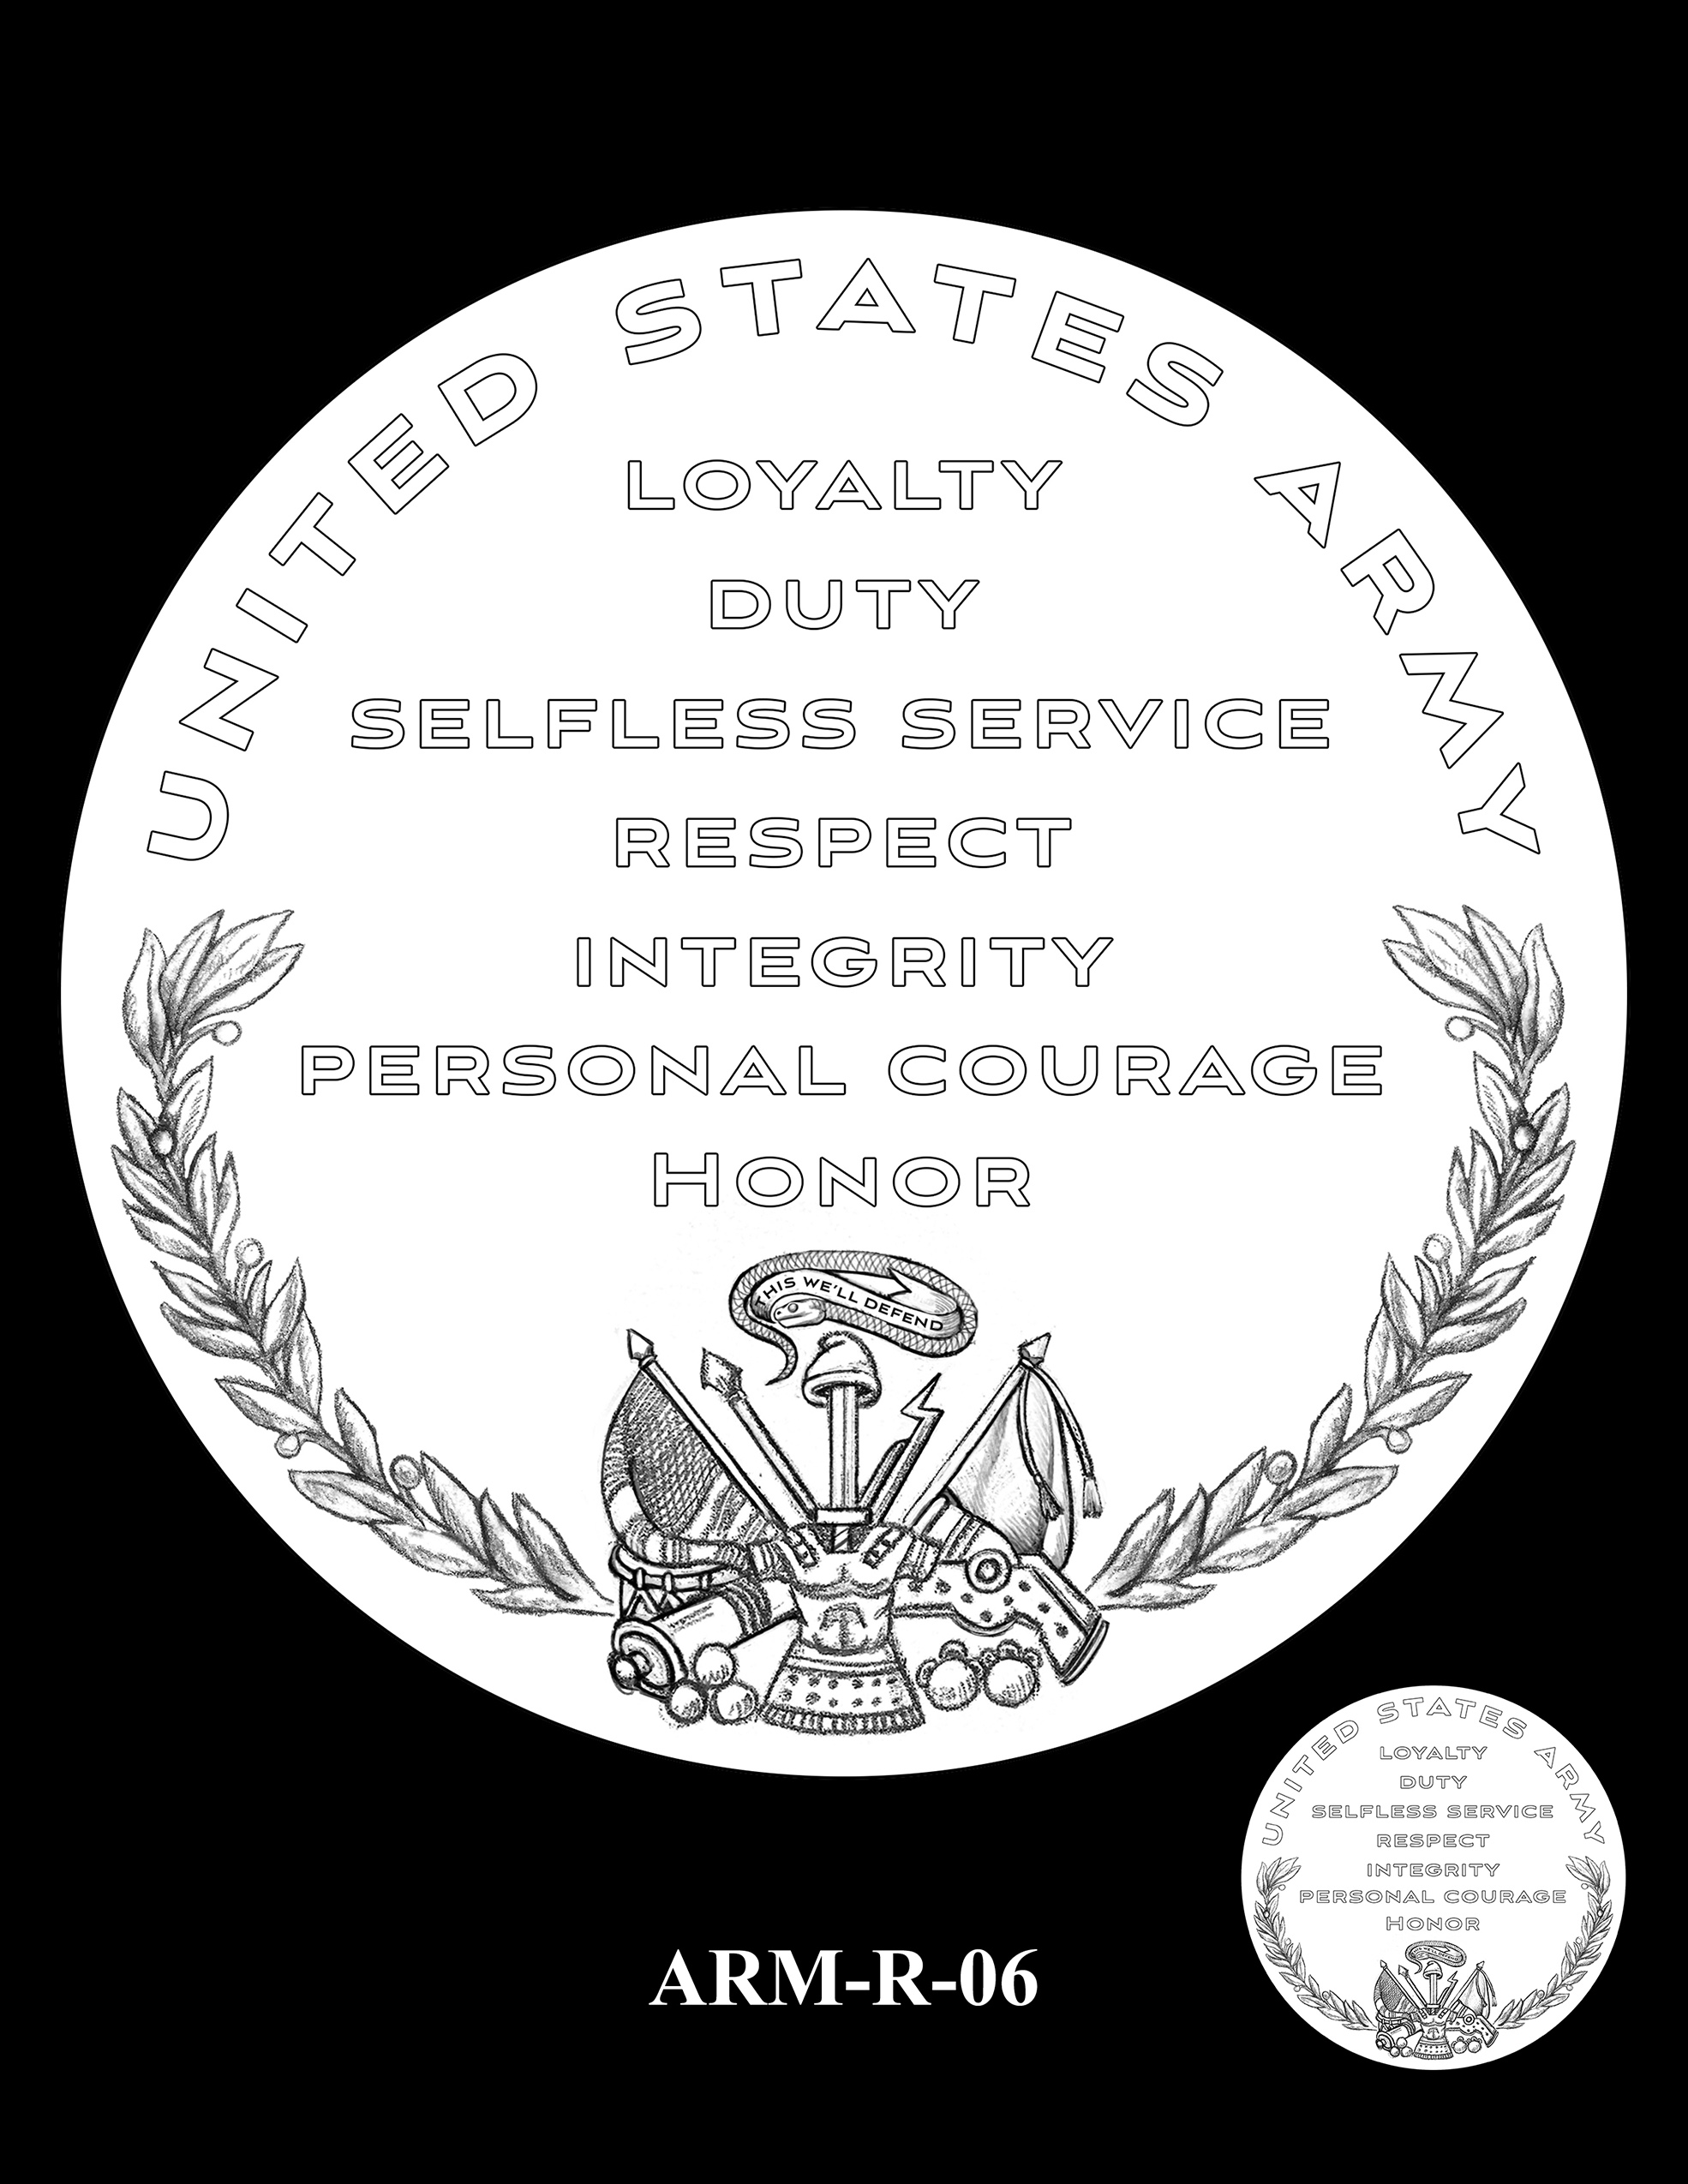 ARM-R-06 -- United States Army Silver Medal